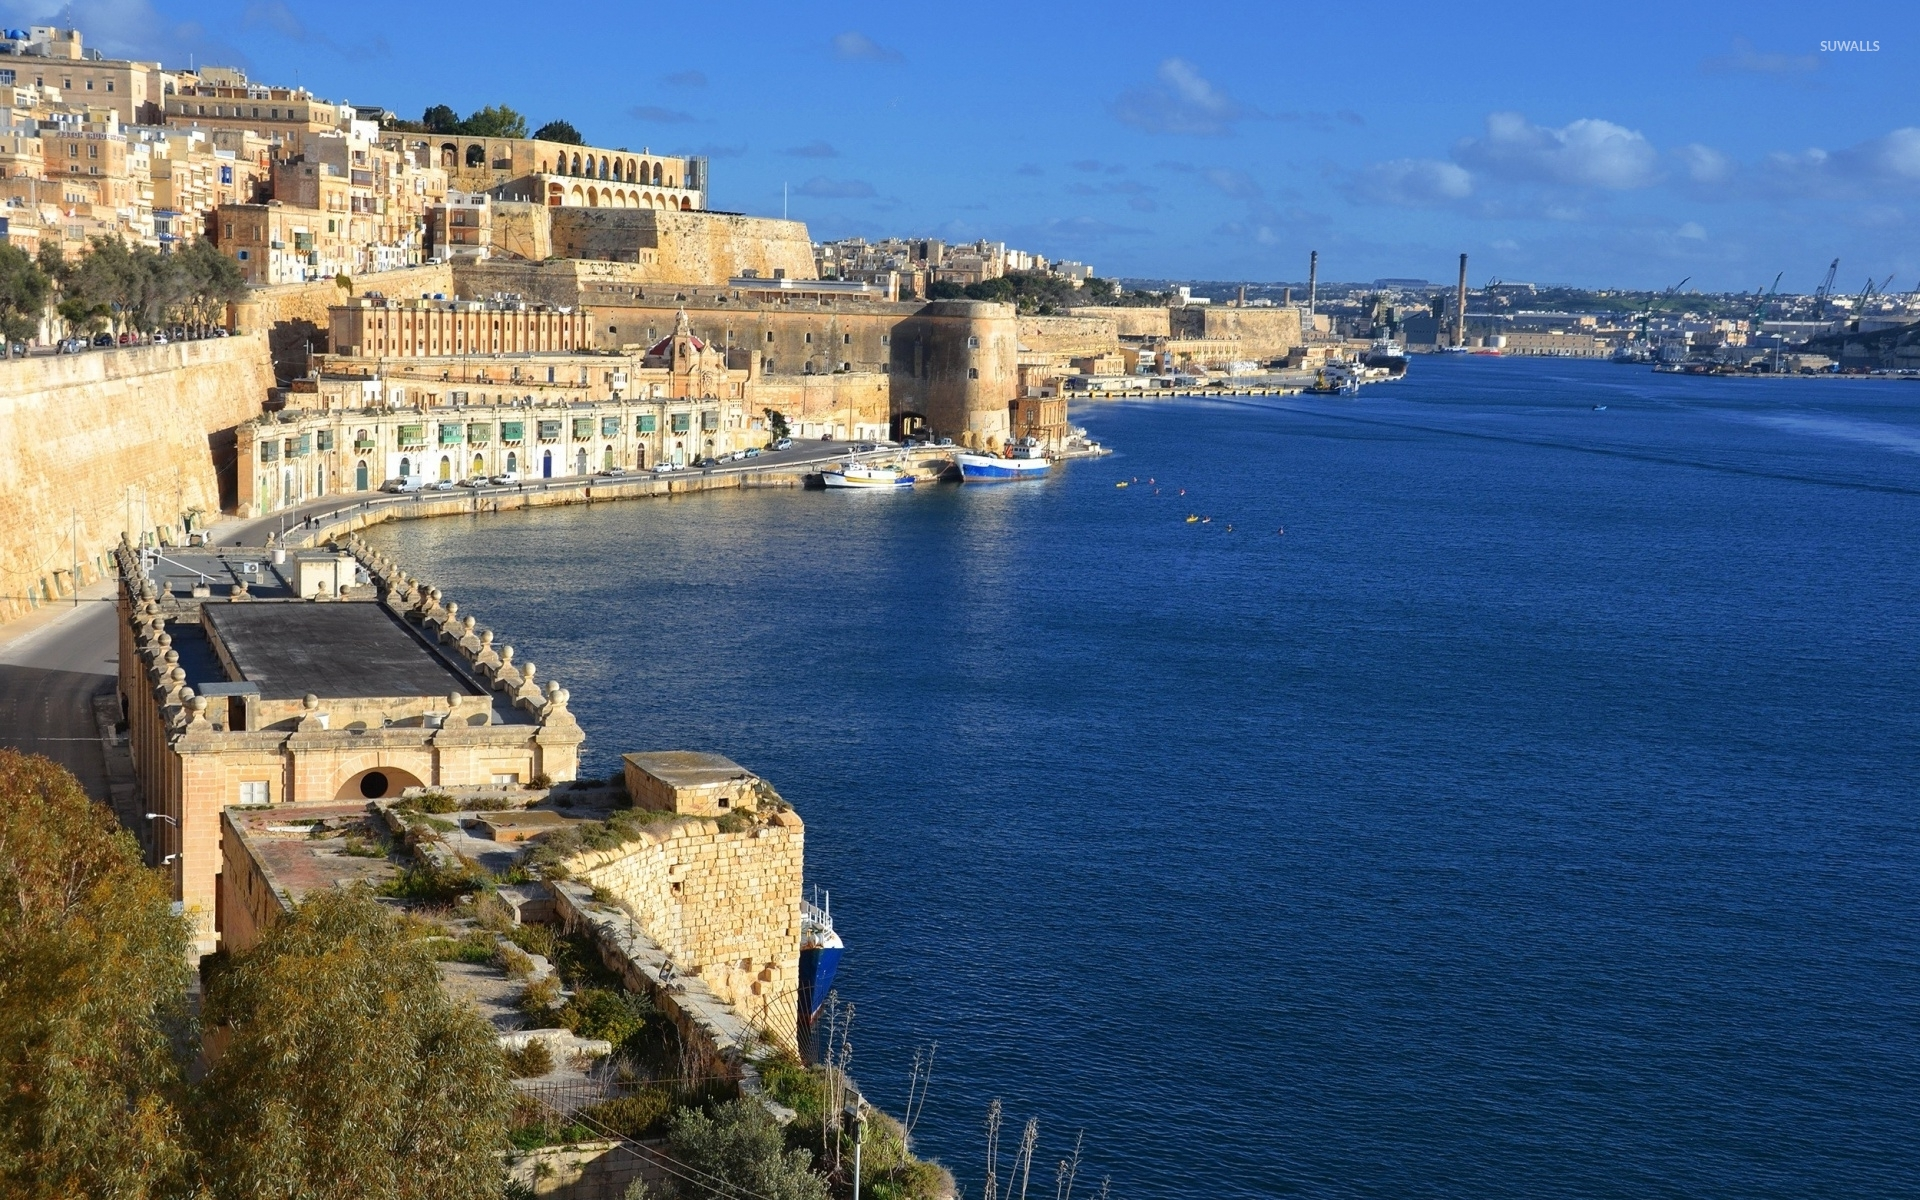 City-Of-Valletta-Guarded-By-A-Stone-Frotress-48975-1920×1200-Wallpaper